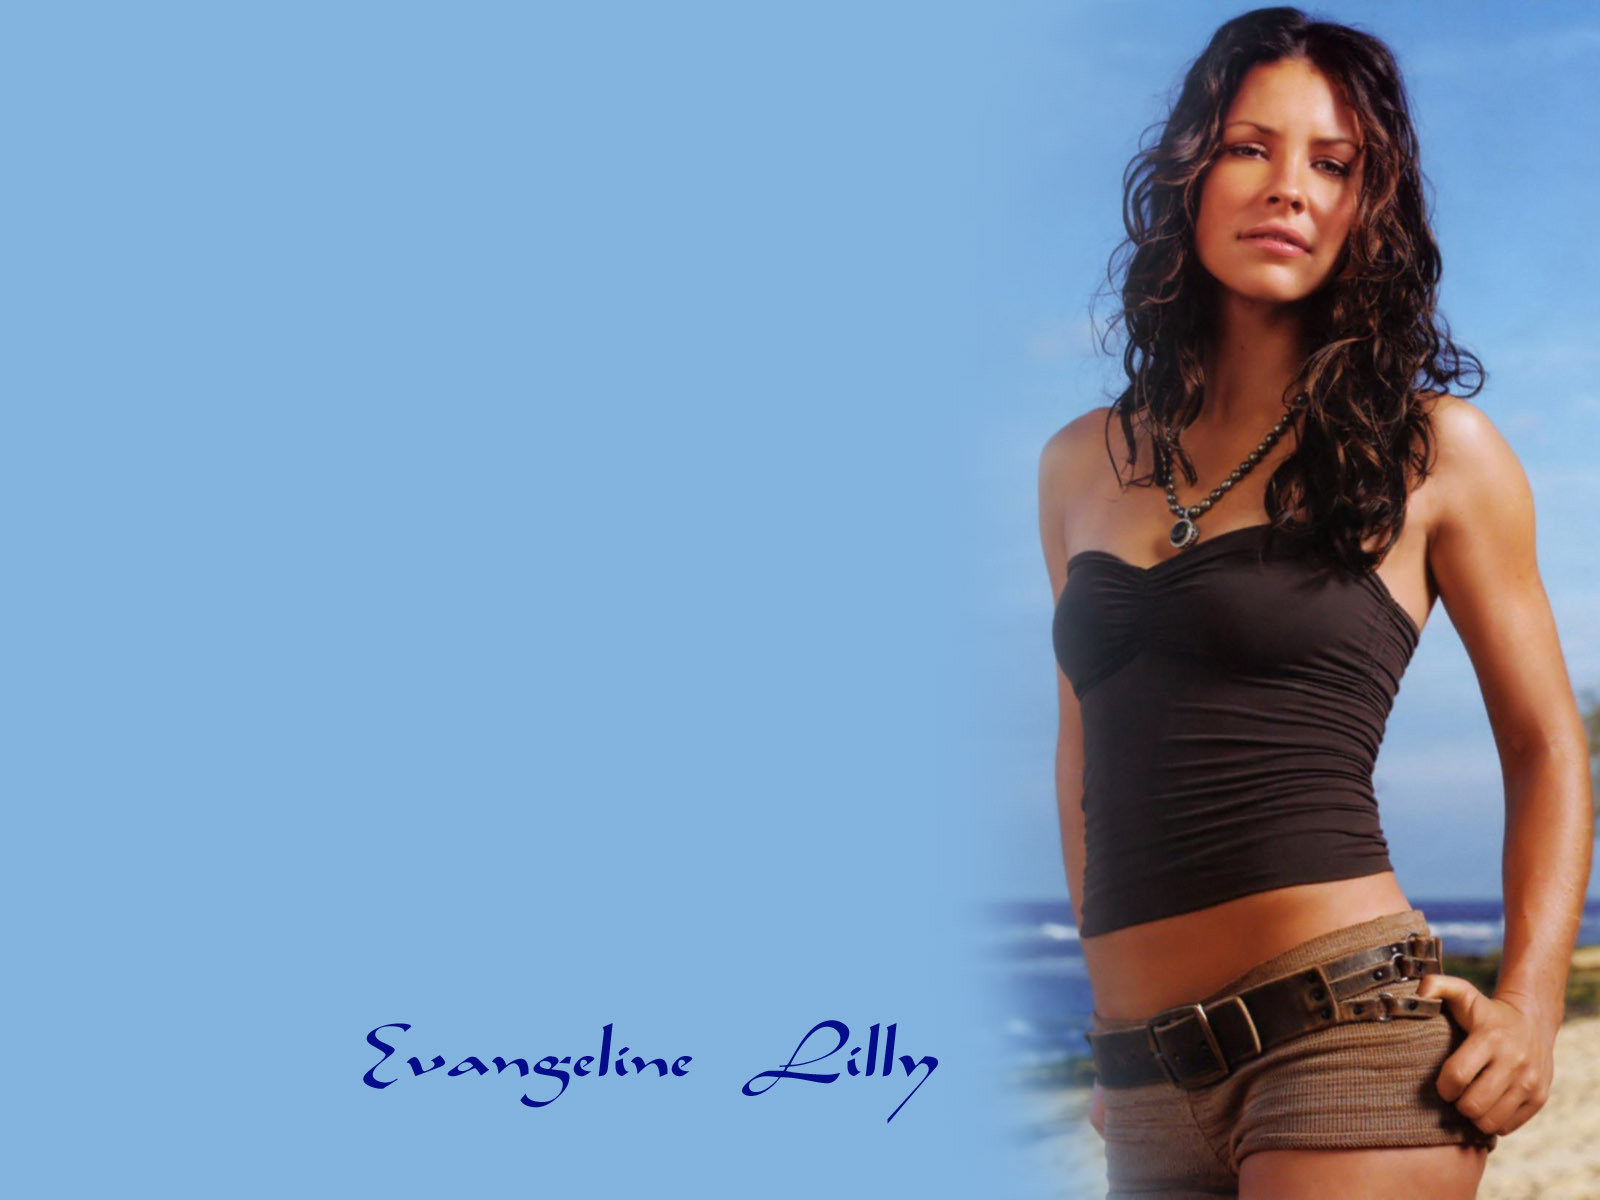 Evangeline Lilly   Evangeline Lilly Wallpaper 20893326 1600x1200